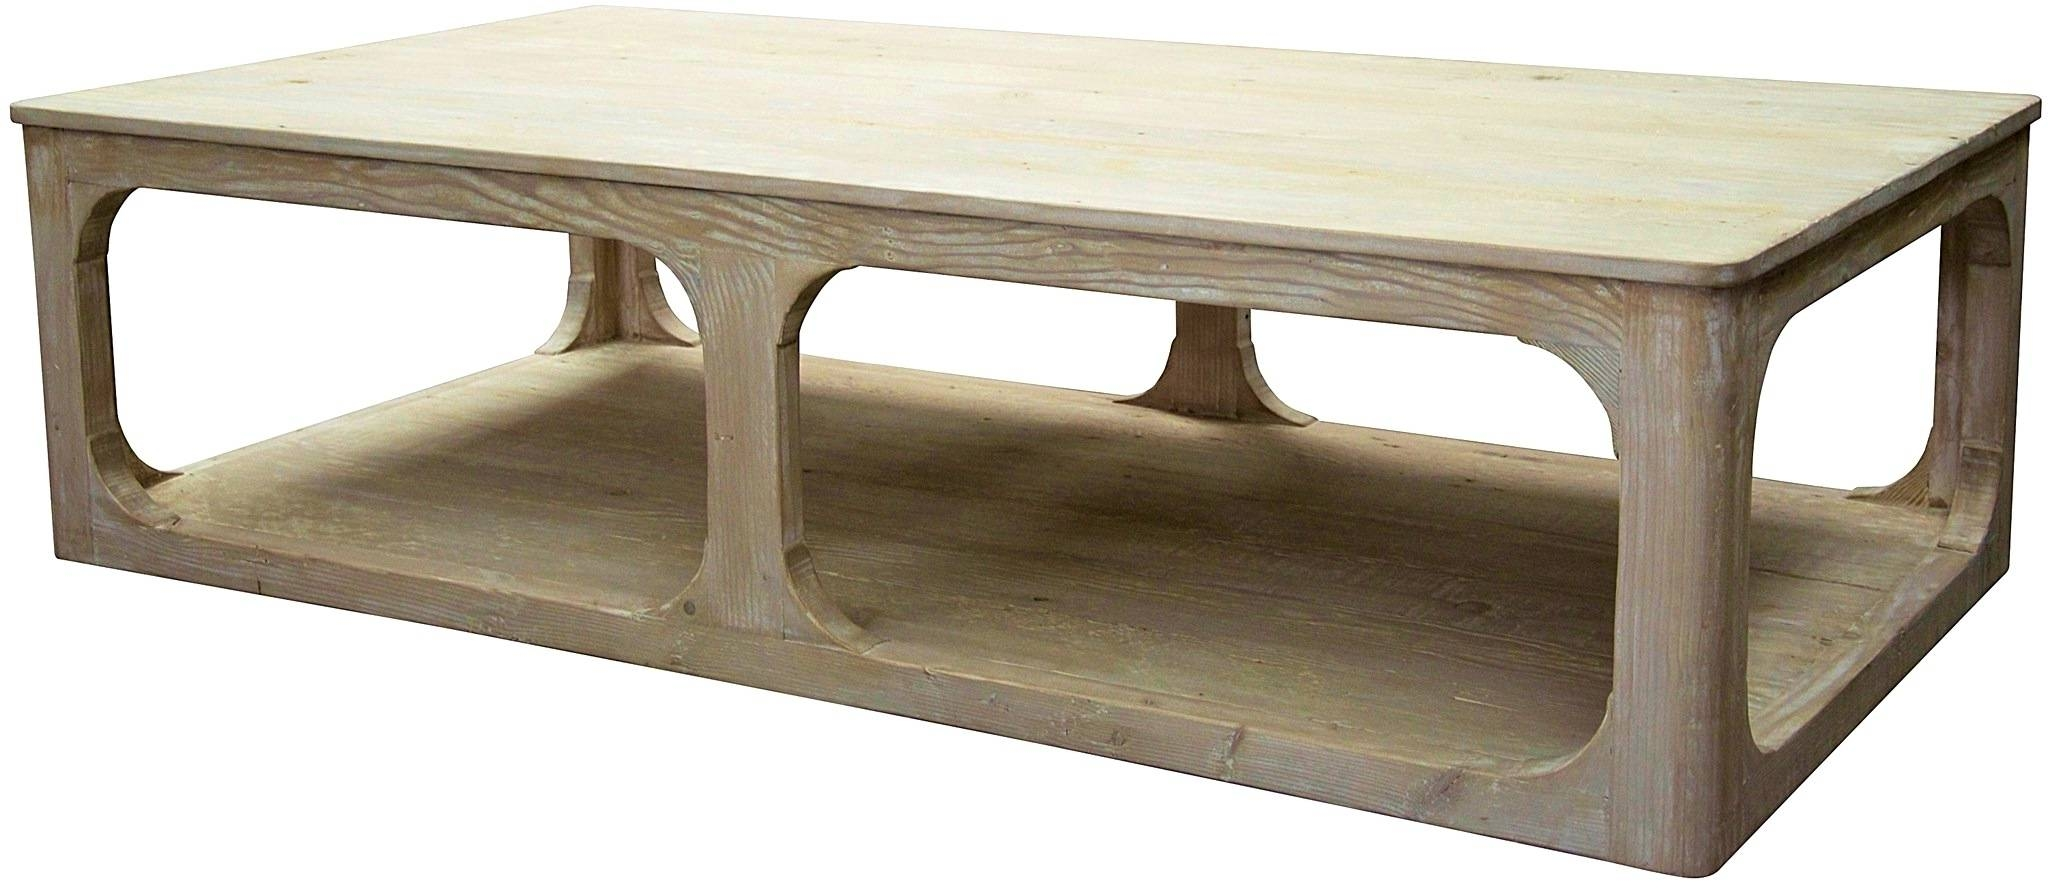 Grey Wood Coffee Table Barn Wood Top Coffee Table House Gorgeous Way To Cover Up Parsons Grey